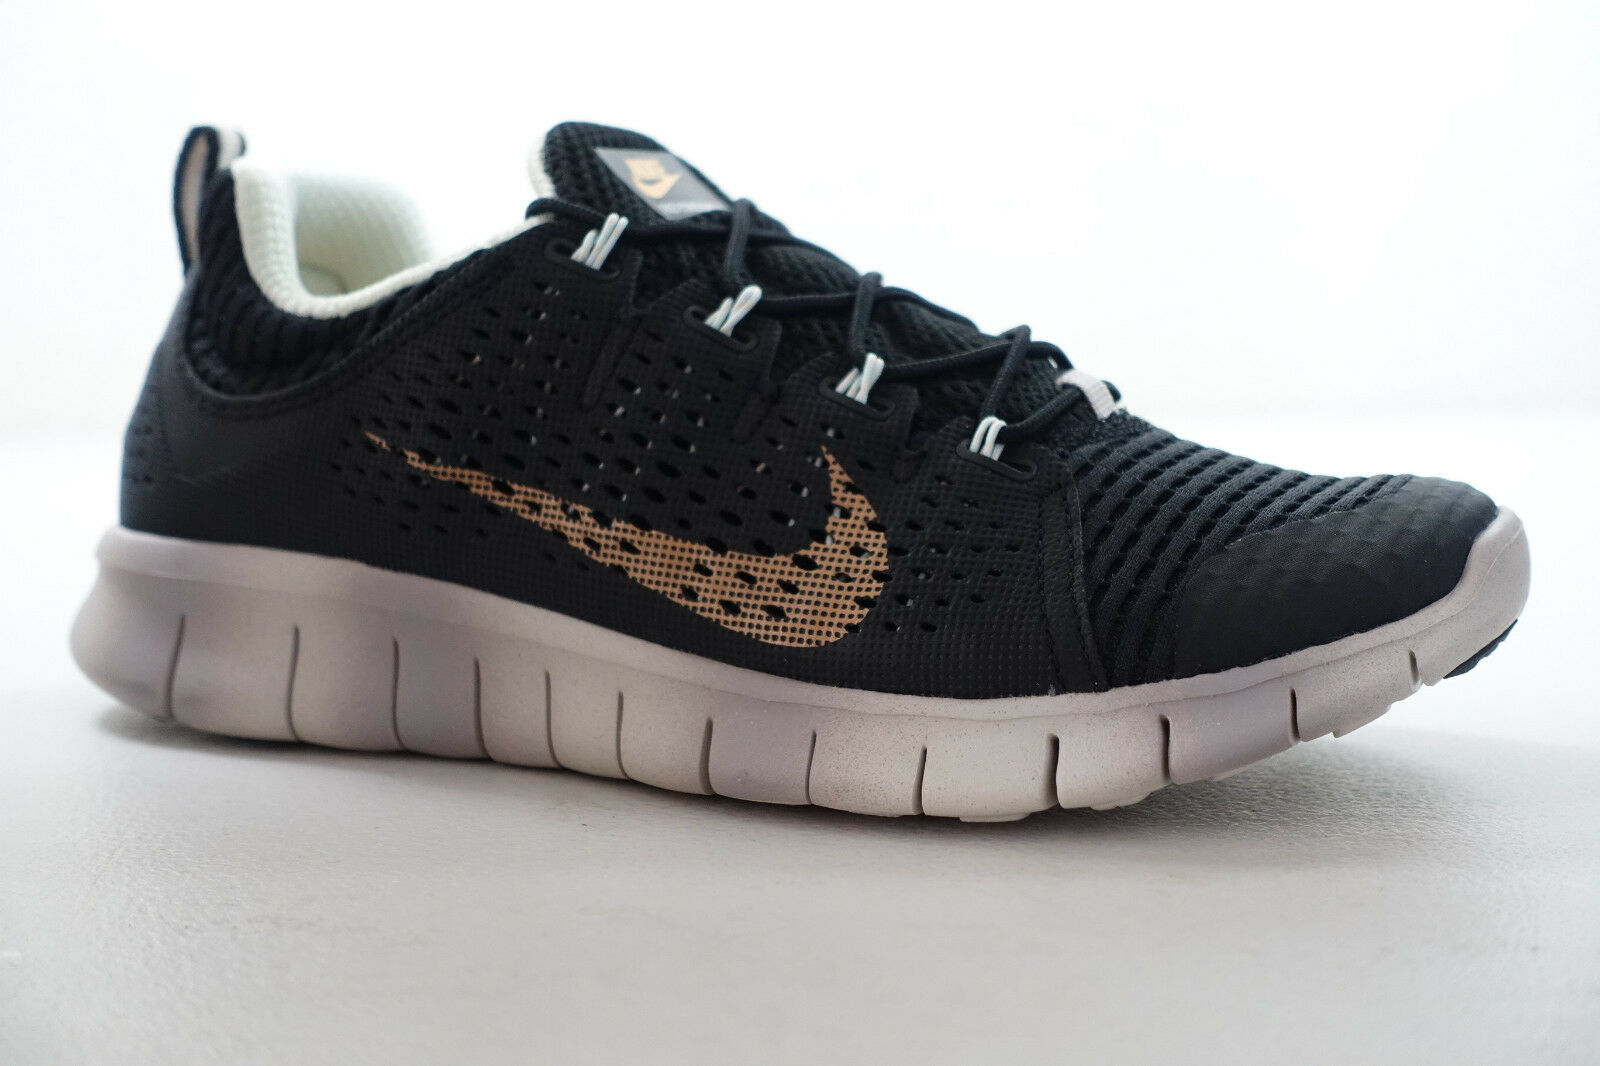 factory authentic ad980 02628 new MENS NIKE FREE POWERLINES II SHOES SIZE 8 black melon tint 555306 030